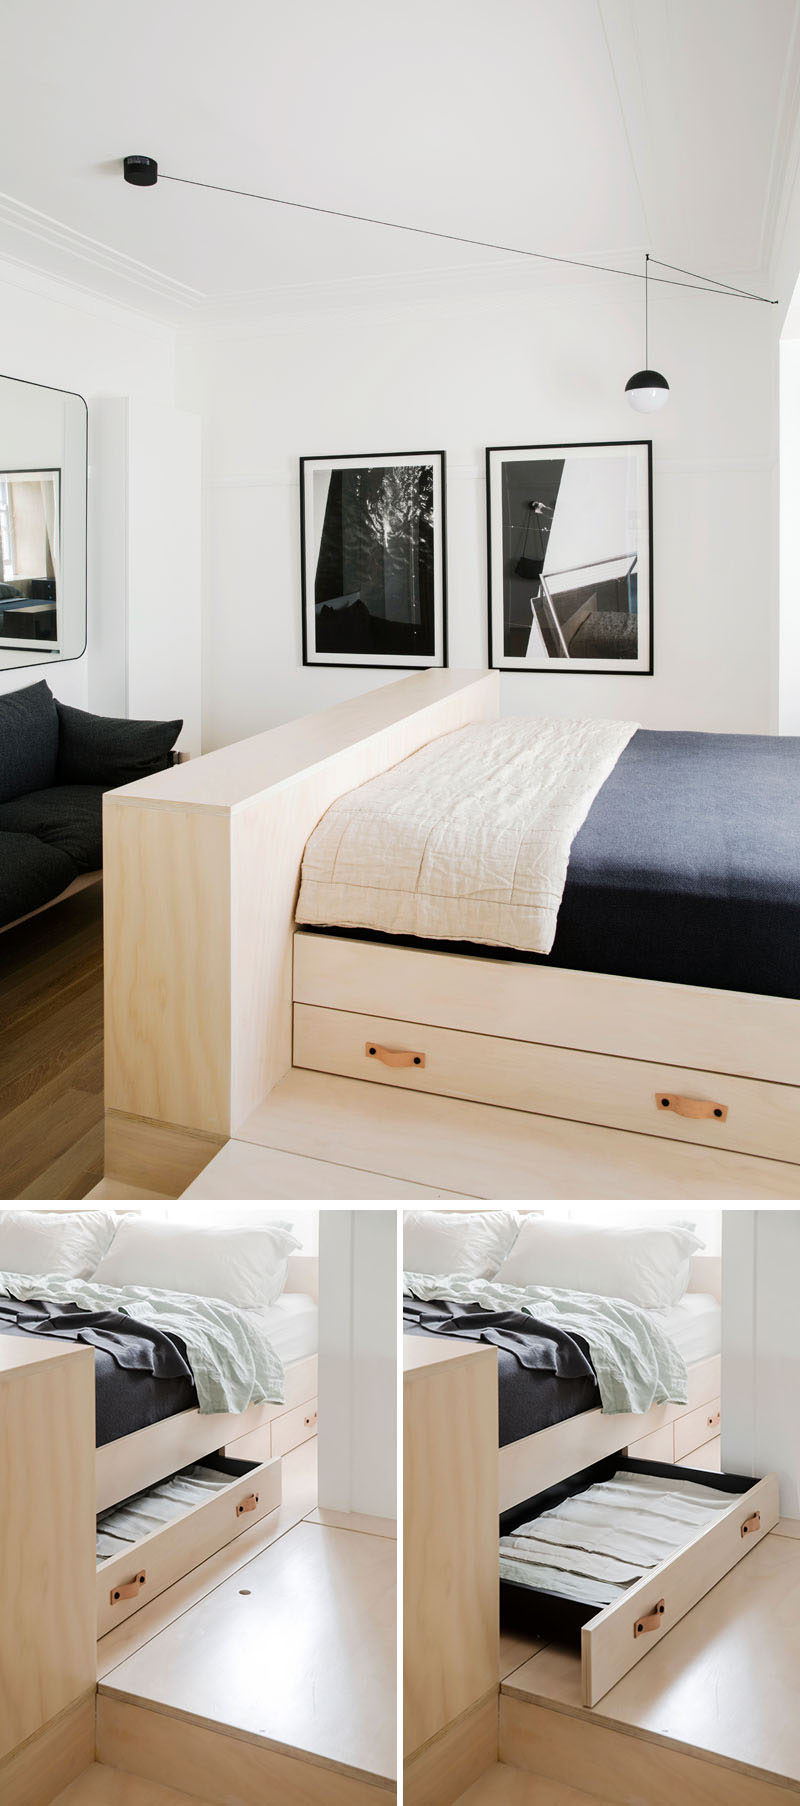 Under this bed platform, there are multiple pull-out drawers for housing additional bedding and pillows.